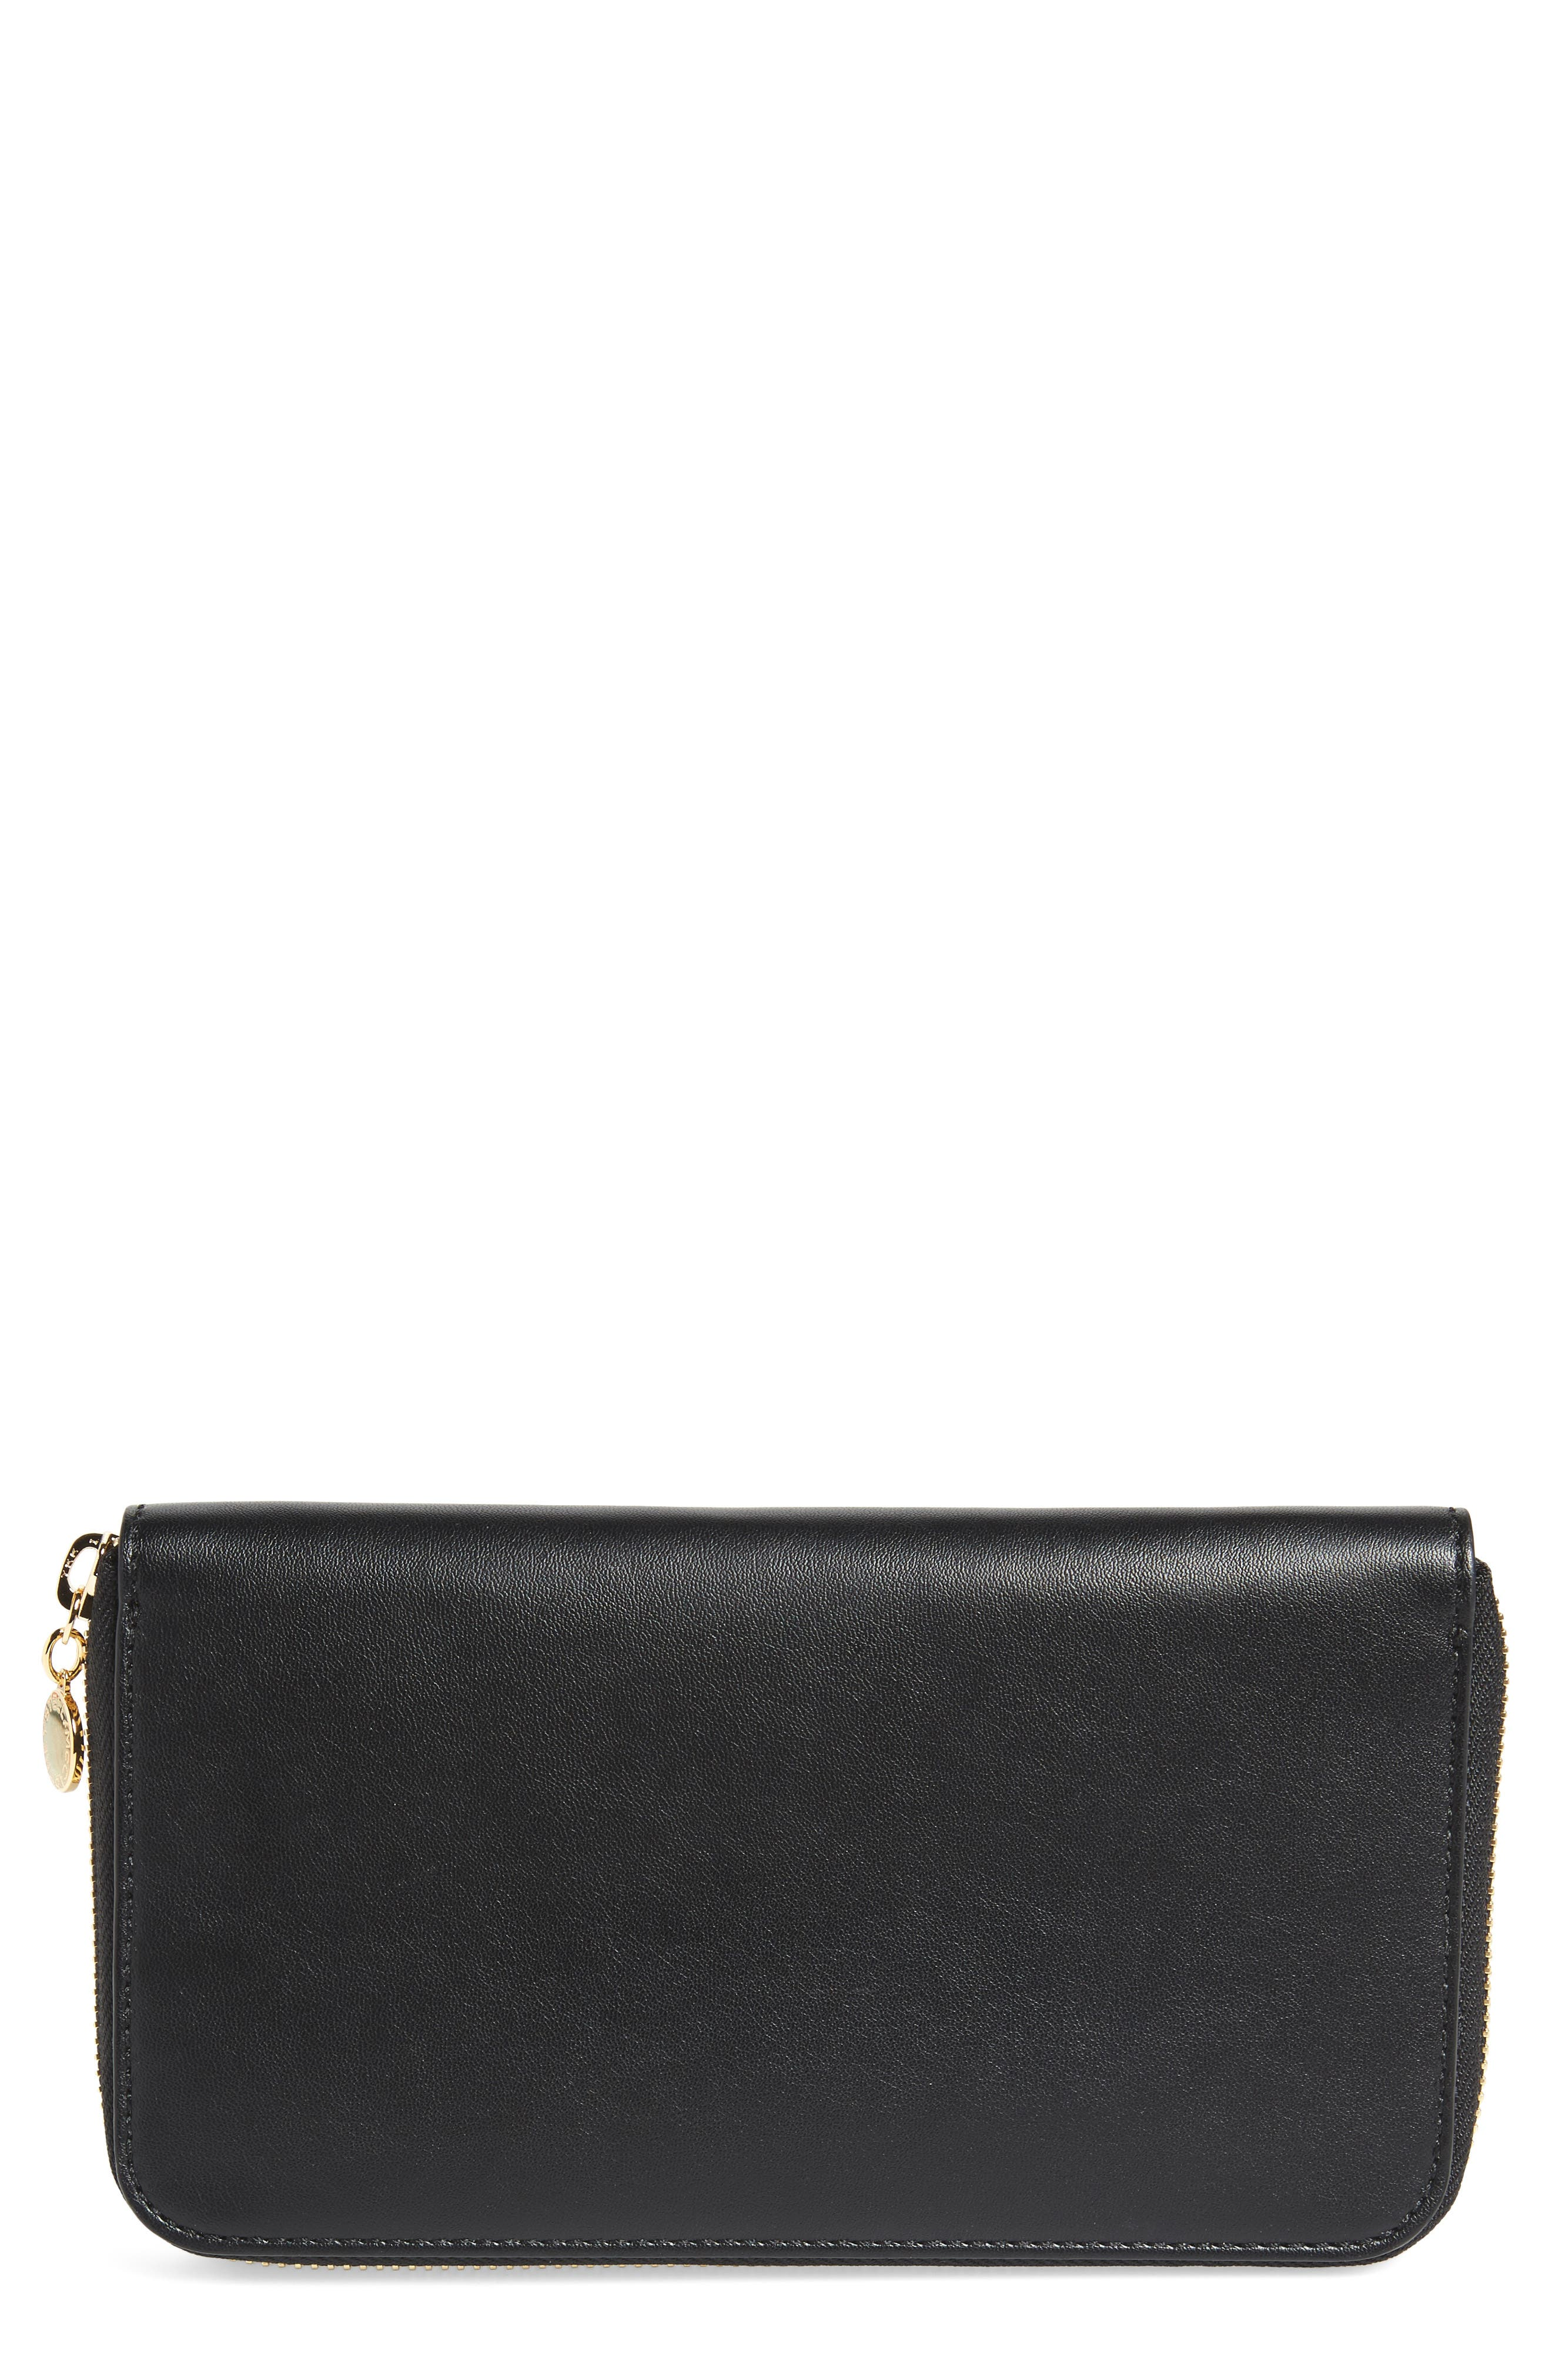 Alter Nappa Perforated Logo Faux Leather Wallet,                         Main,                         color, Black